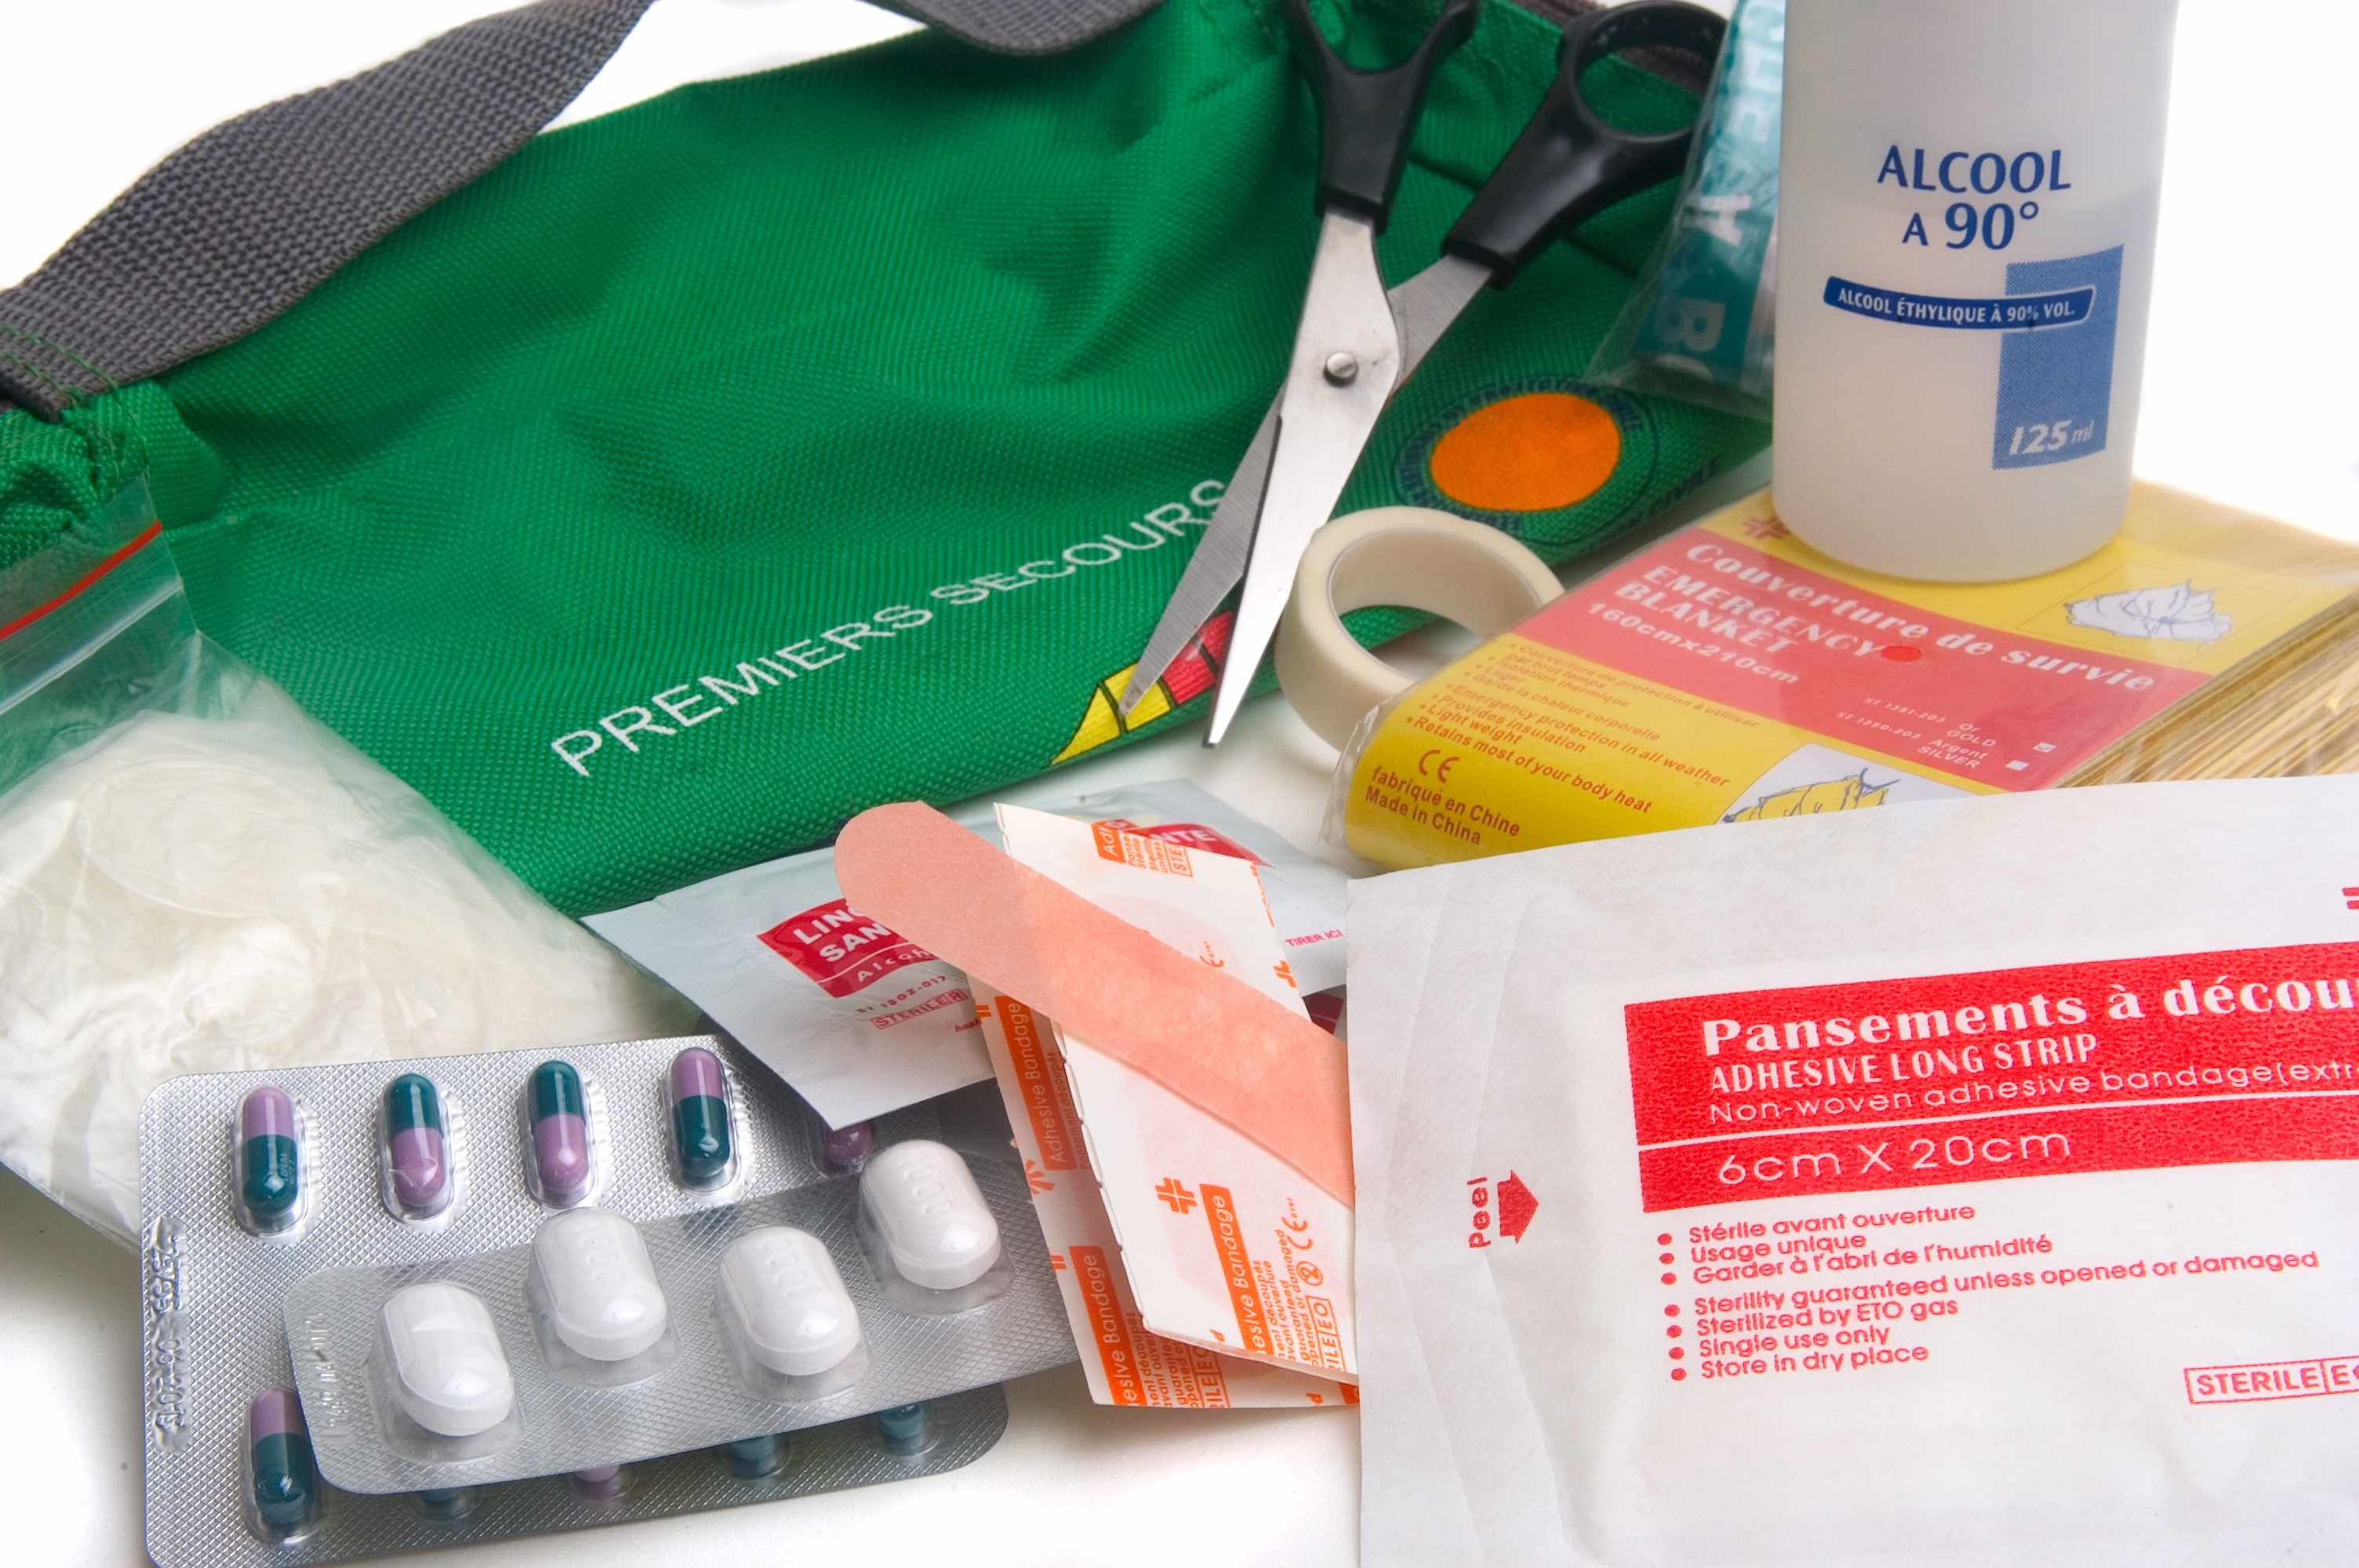 emergency bandages and first aid kit contents